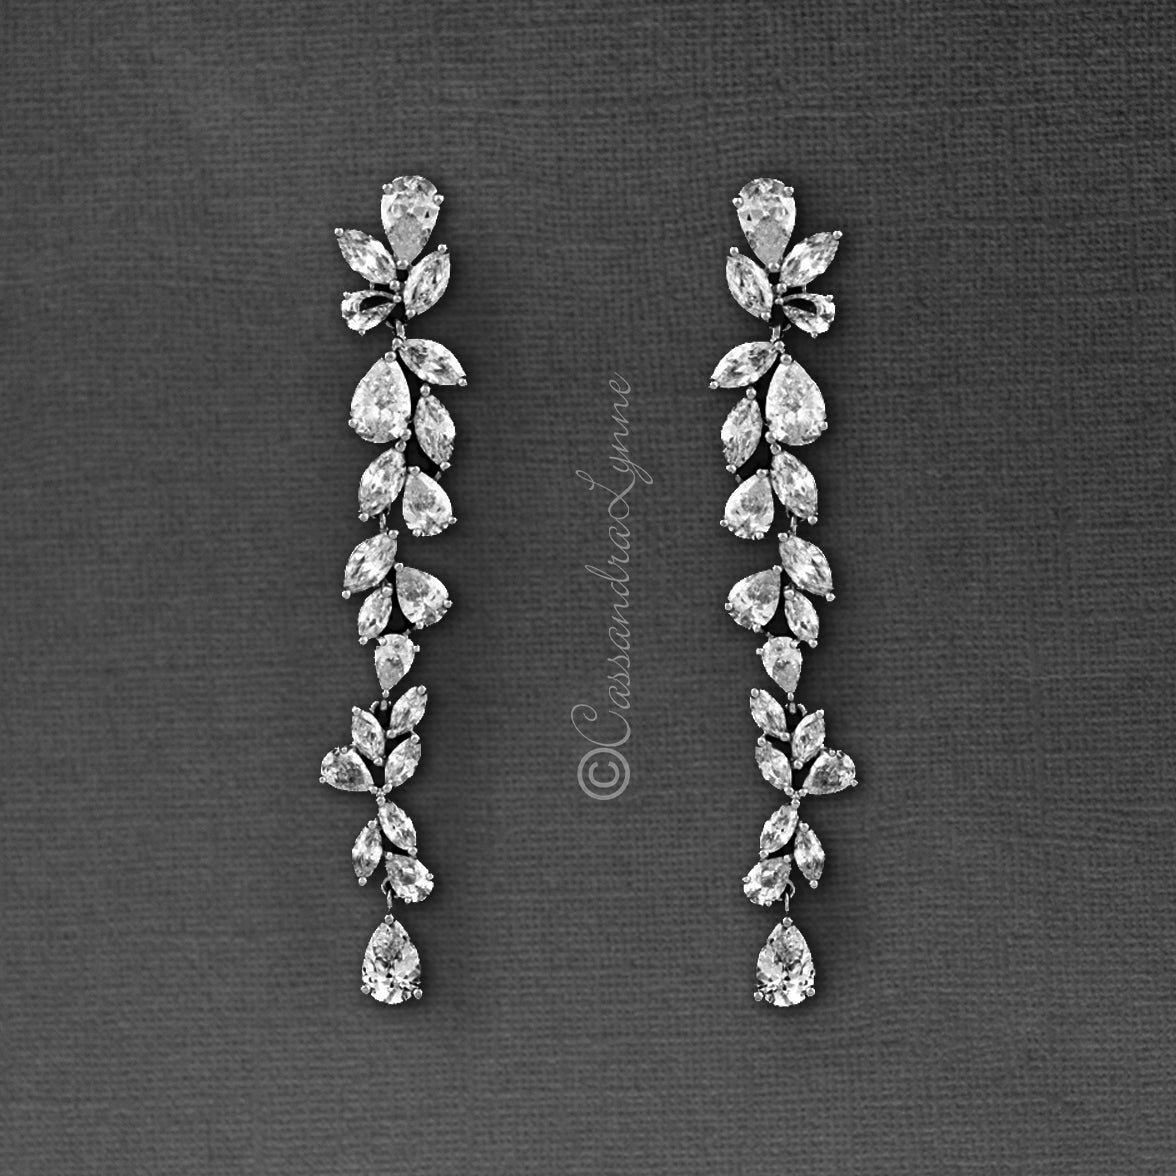 Bridal Earrings of Teardrop and Marquise CZ Sterling Silver